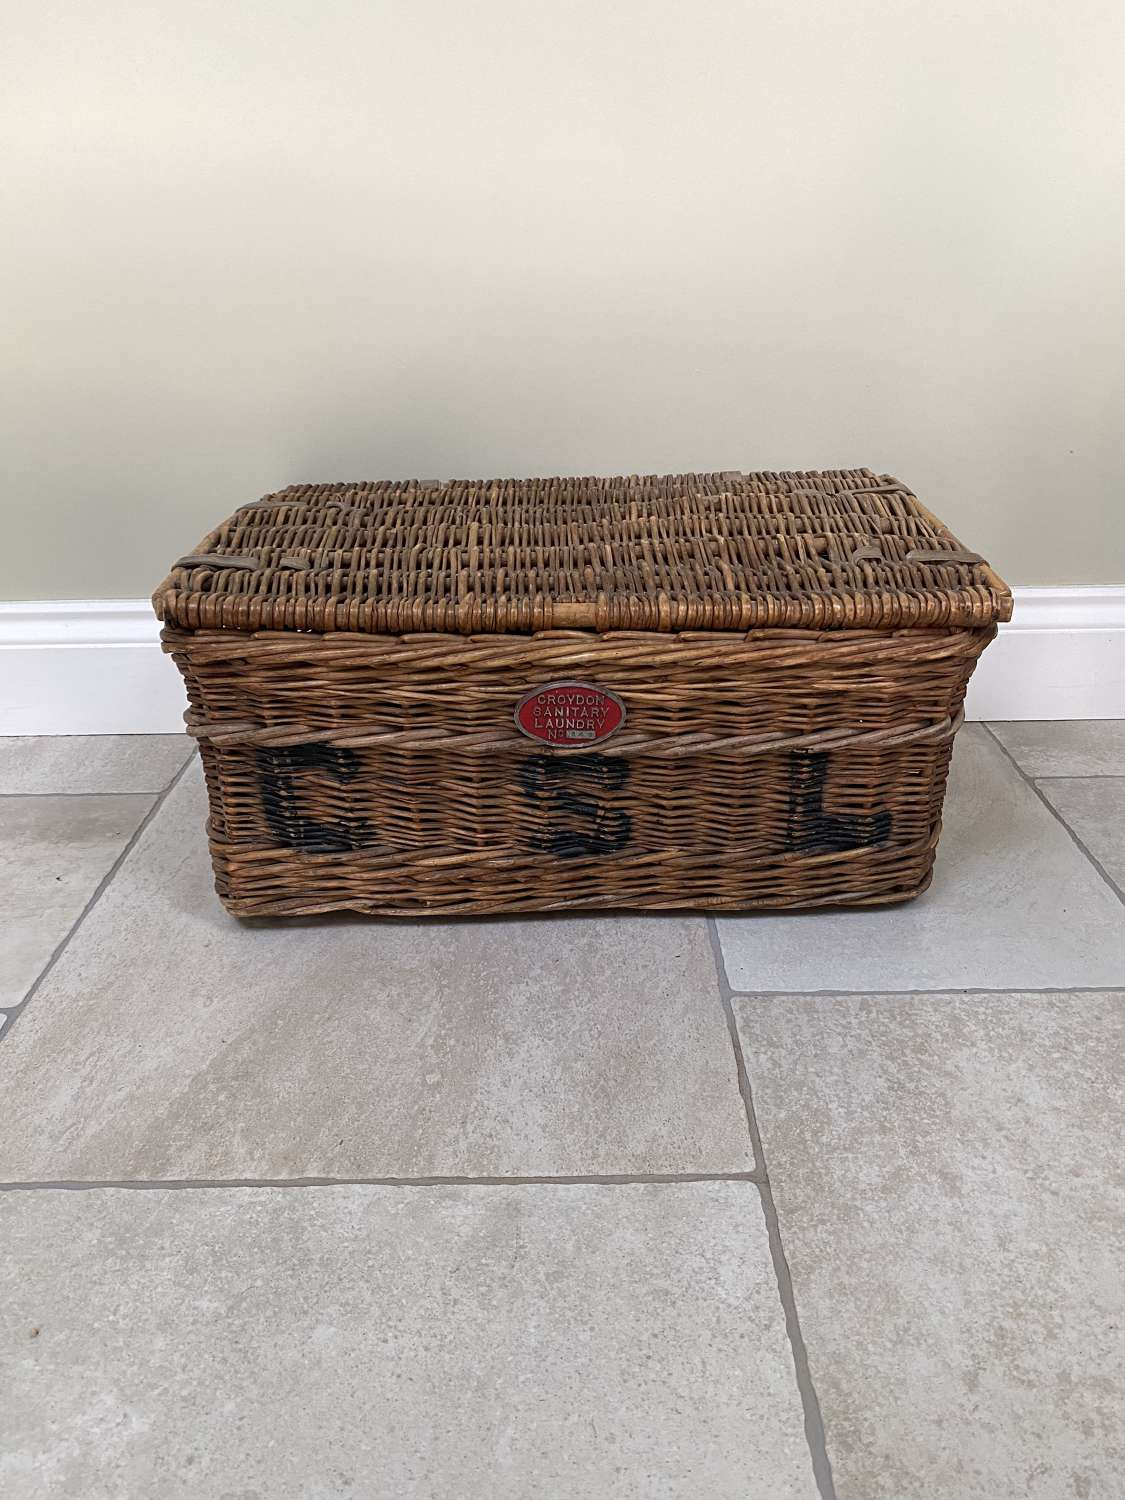 Early 20thC Laundry Basket with Plaque - Croydon Sanitary Laundry